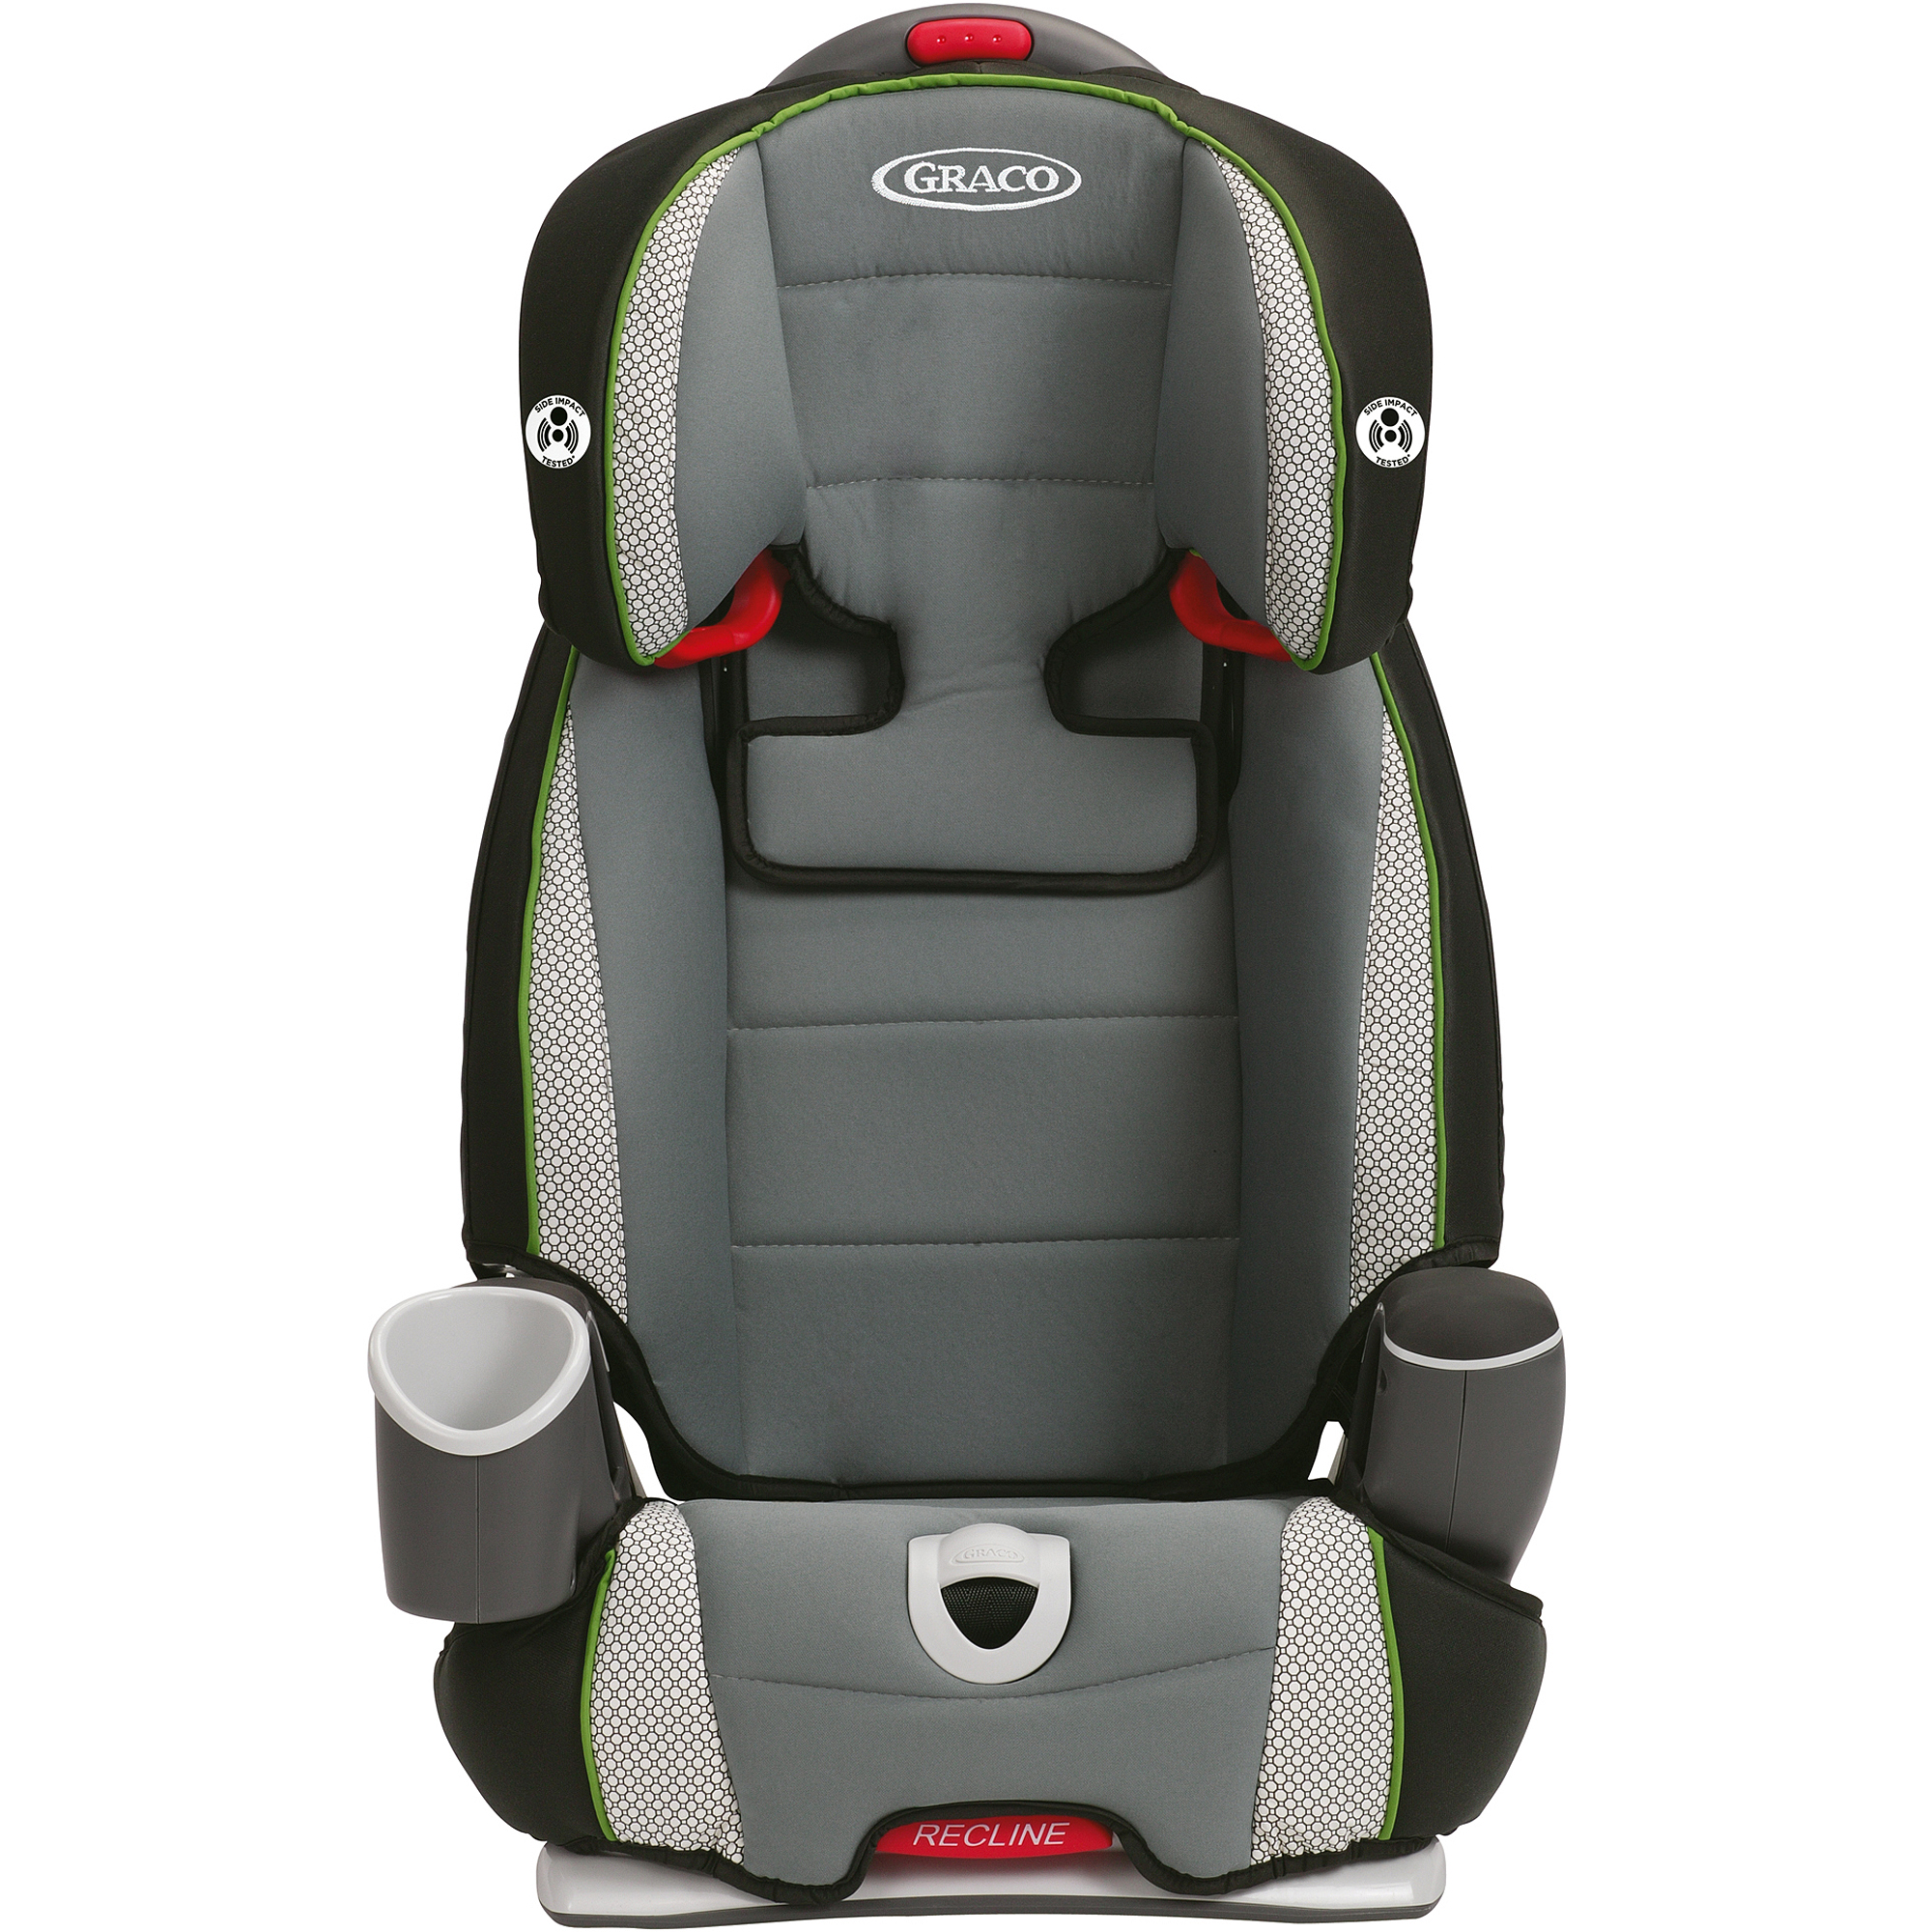 Graco Argos 65 3 In 1 Booster Car Seat Webster